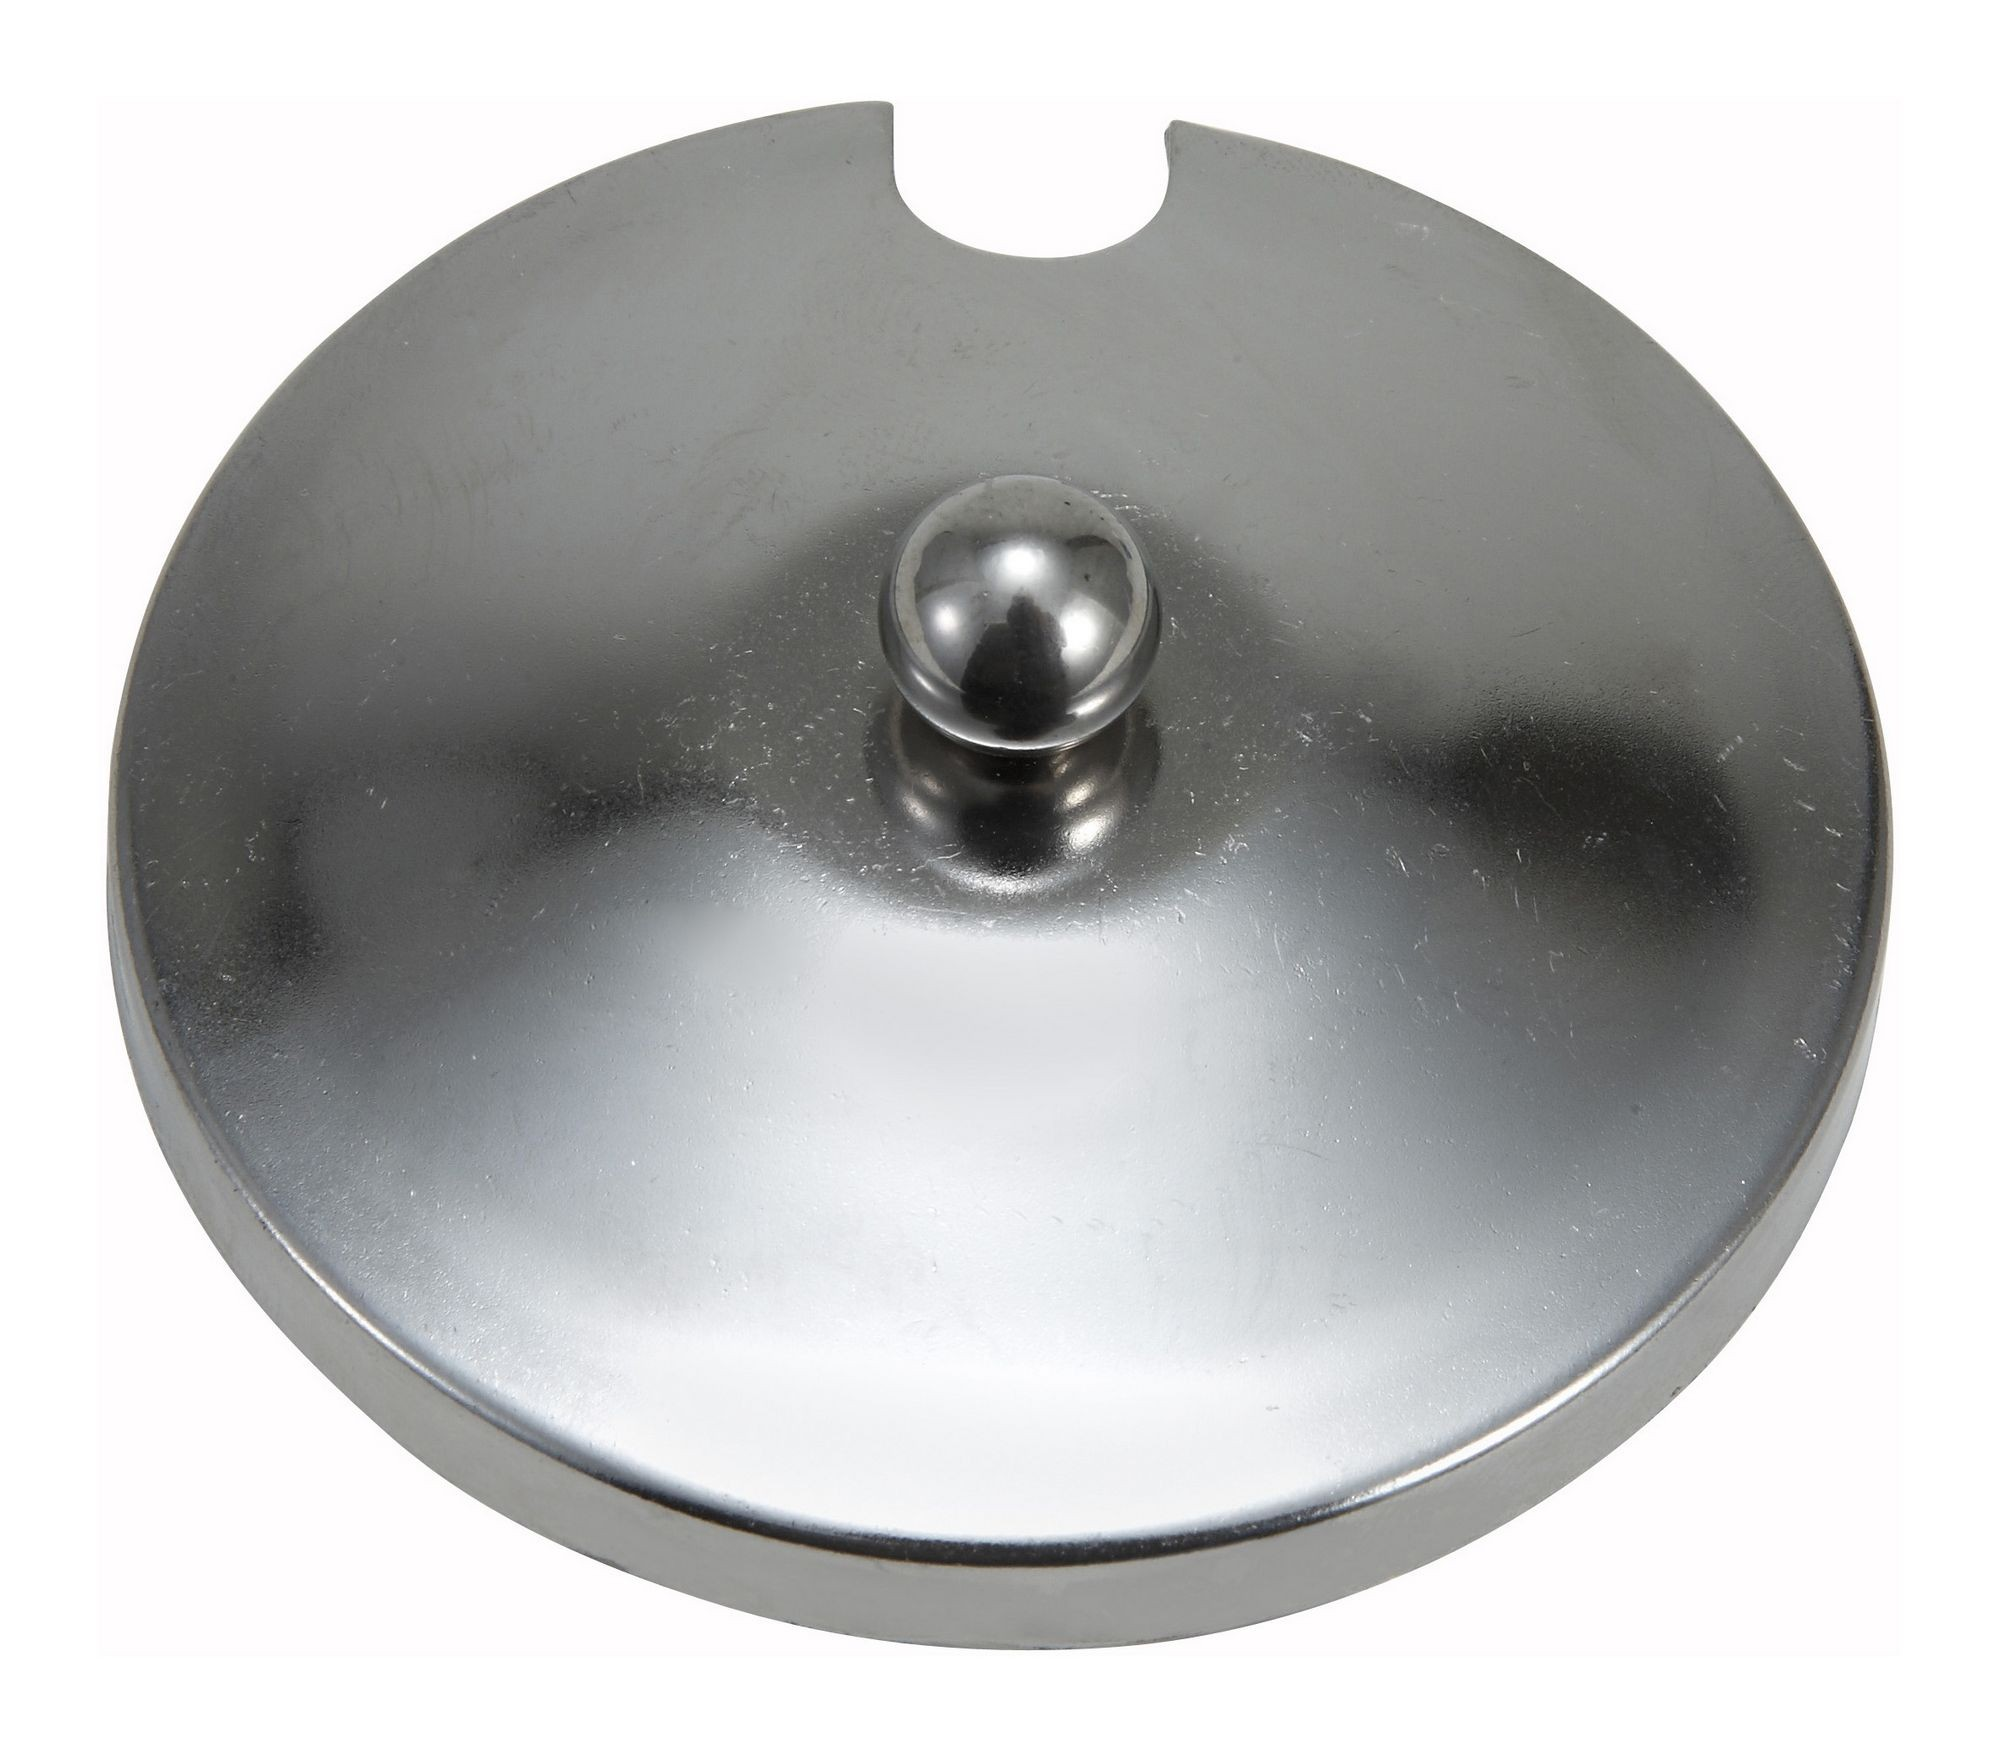 Winco CJ-2C Stainless Steel Slotted Jar Cover for CJ-7P and CJ-7G